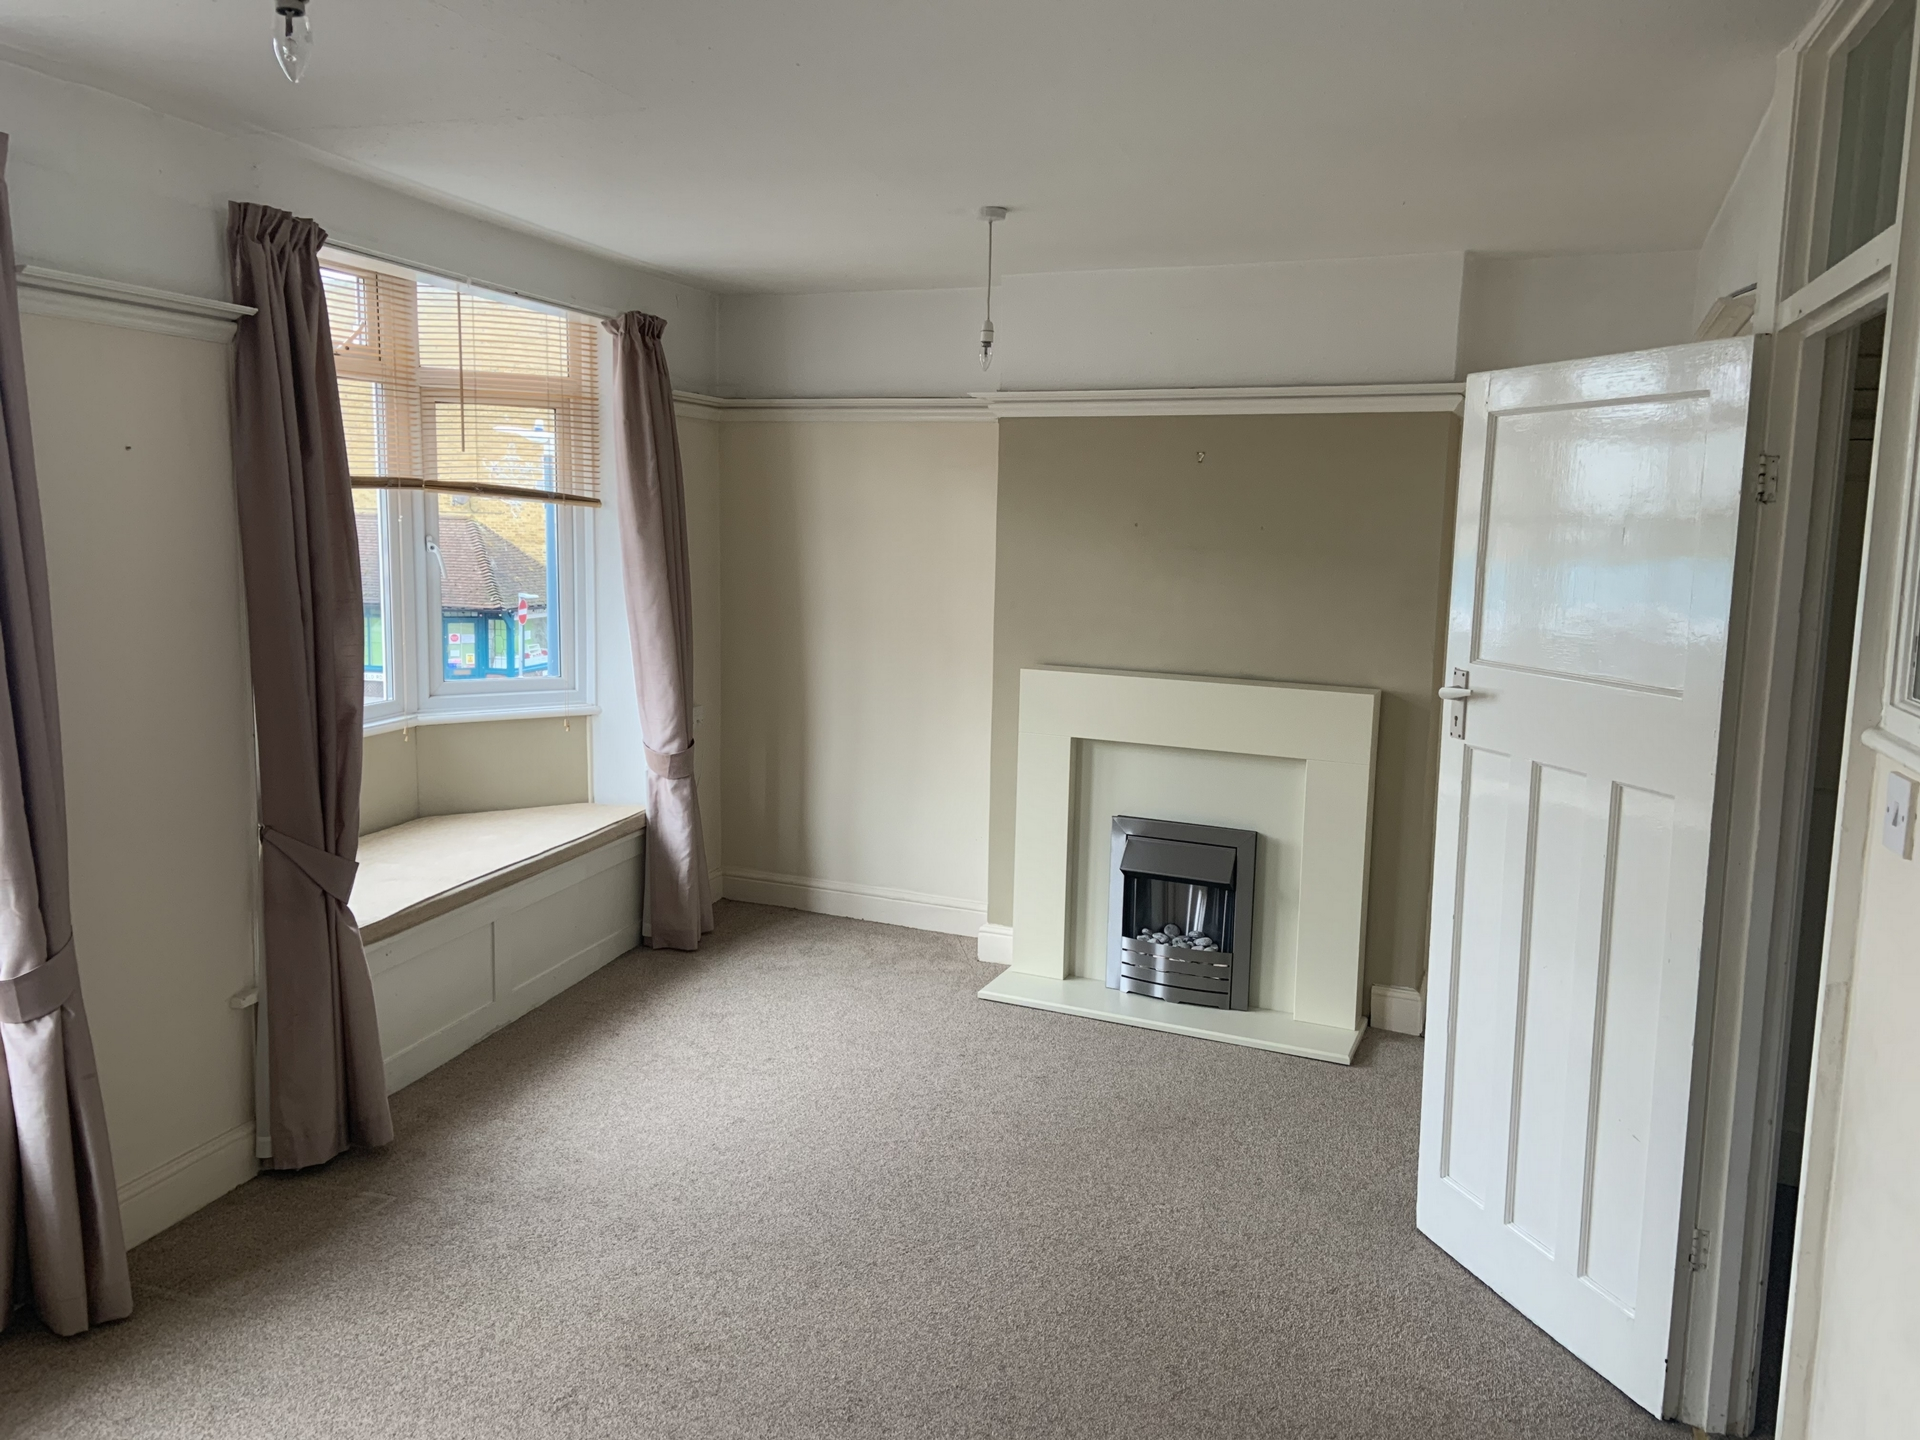 2 bed flat to rent in Station Road, Birchington, CT7, CT7